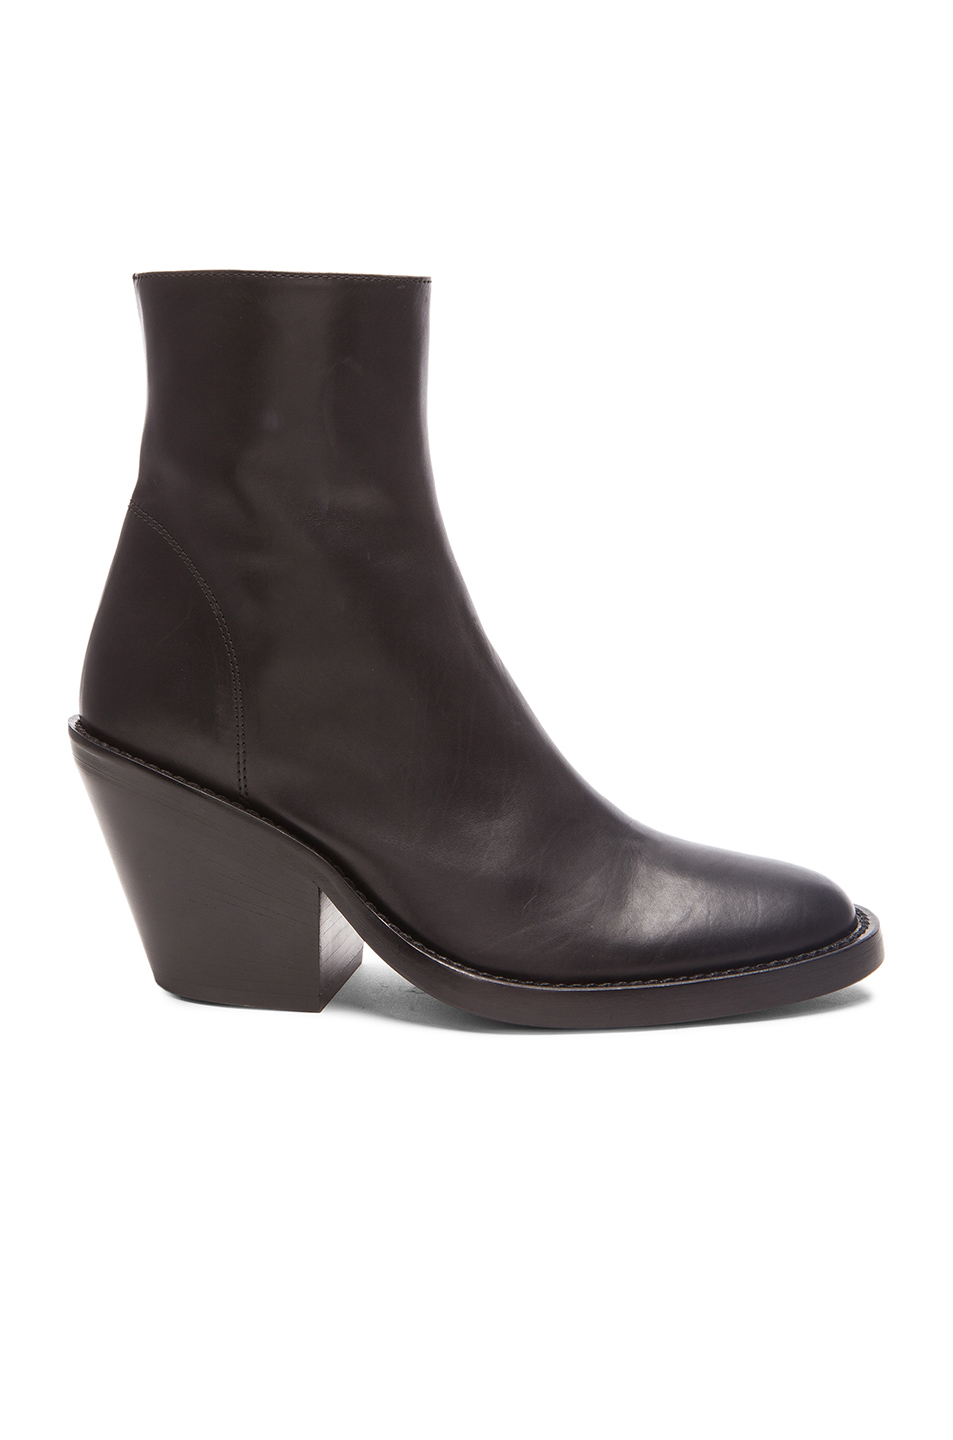 Photo of Ann Demeulemeester Boots in Black shop Ann Demeulemeester shoes